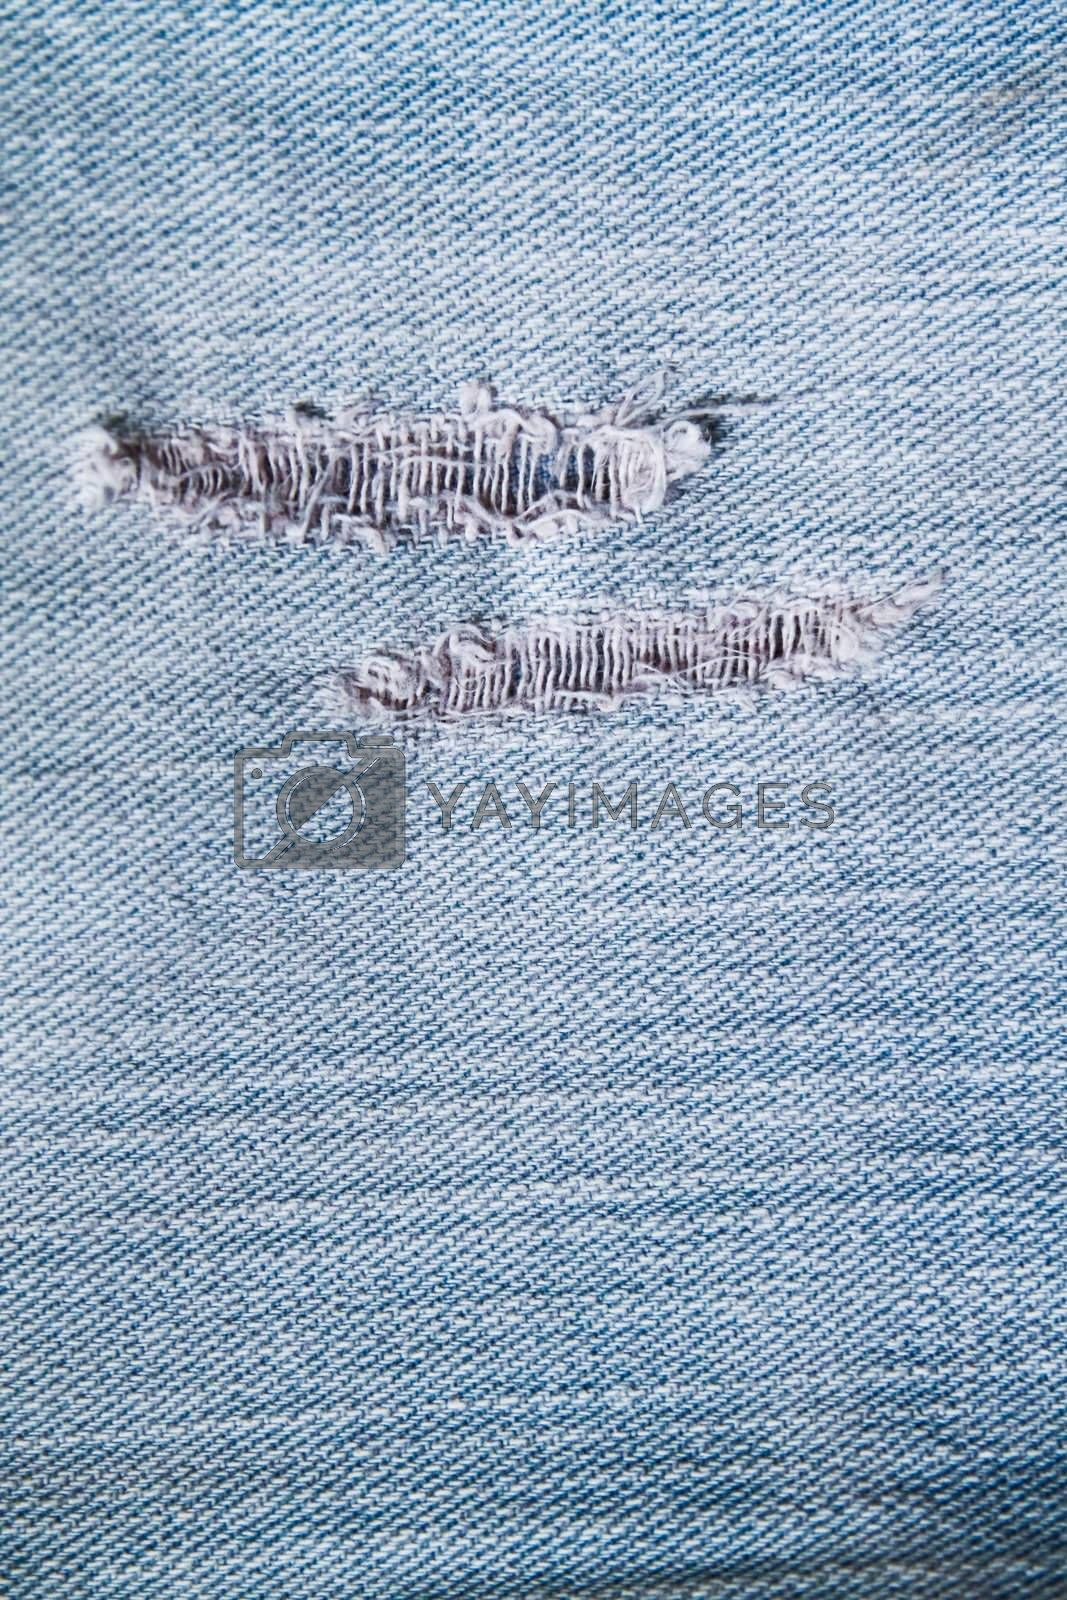 texture and pattern of rip blue jeans